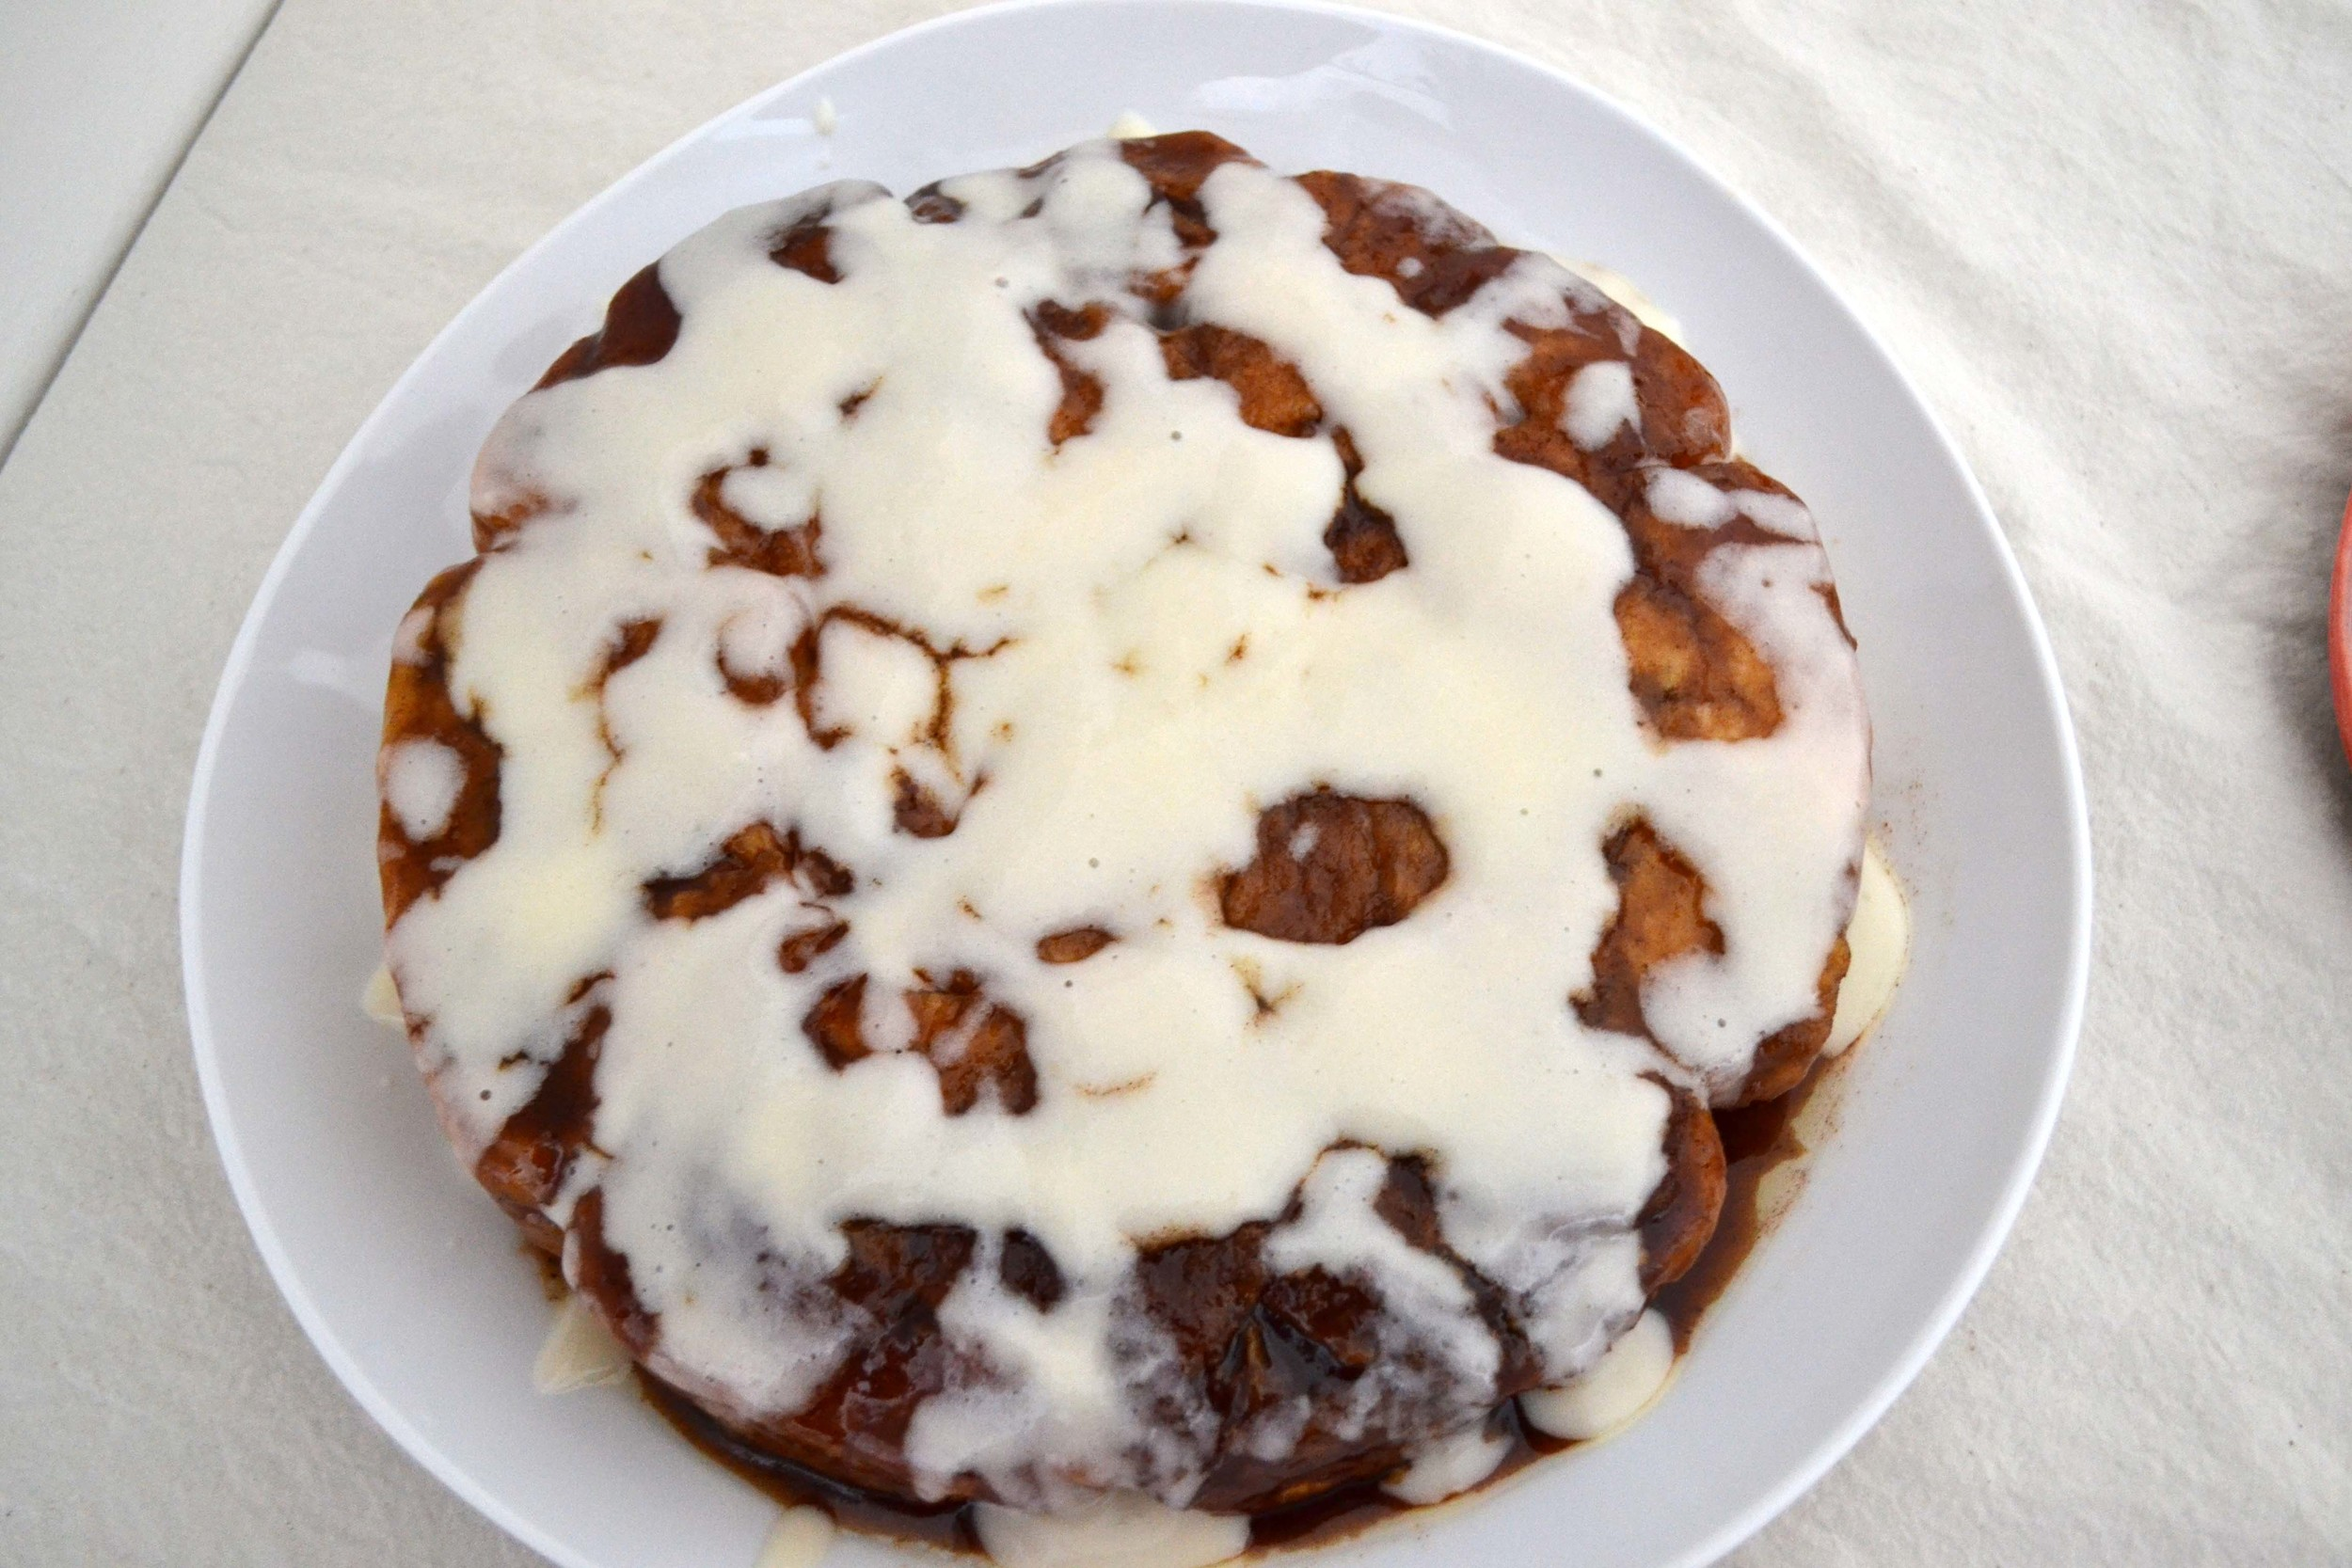 Xander's cinnamon rolls. A biscuit-like crumb with cinnamon spice-y flavors, and cream cheese glaze.